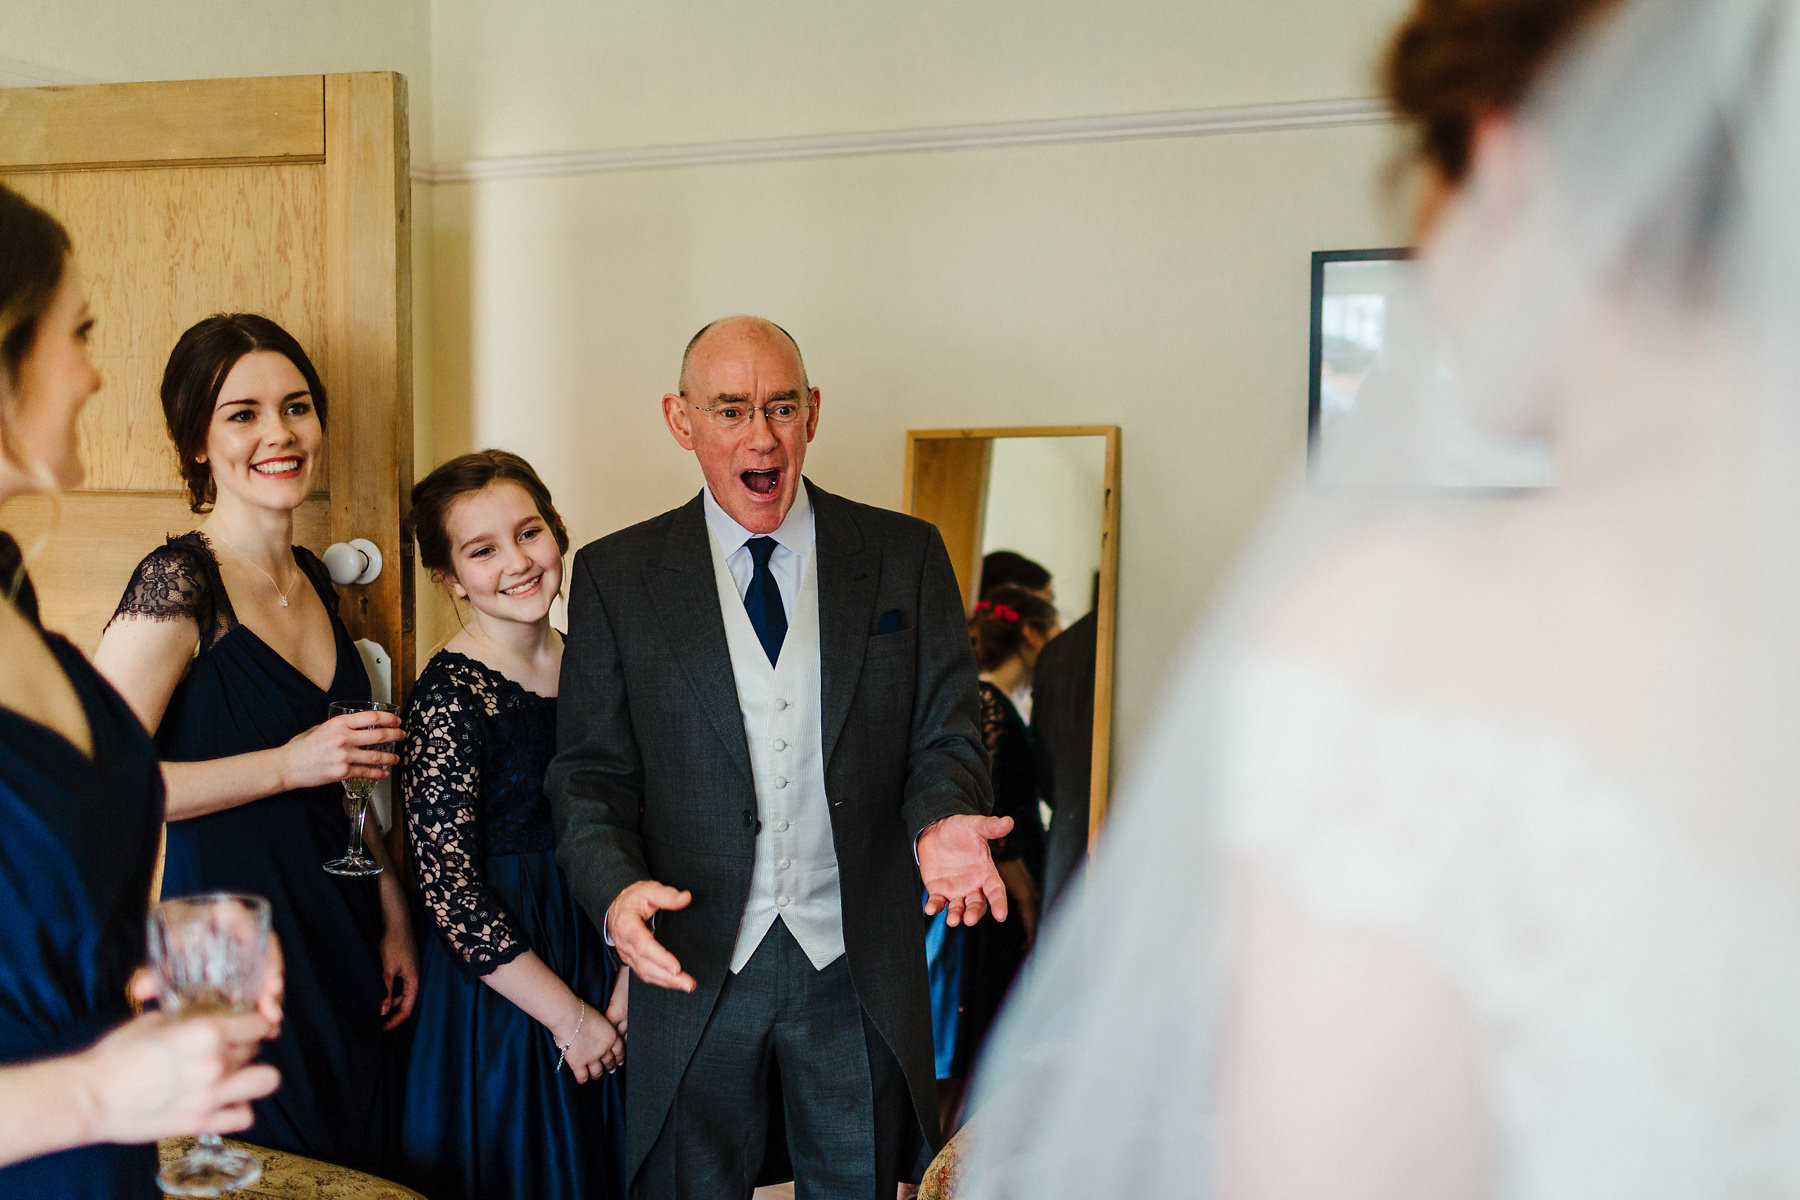 First look with father of the bride photography